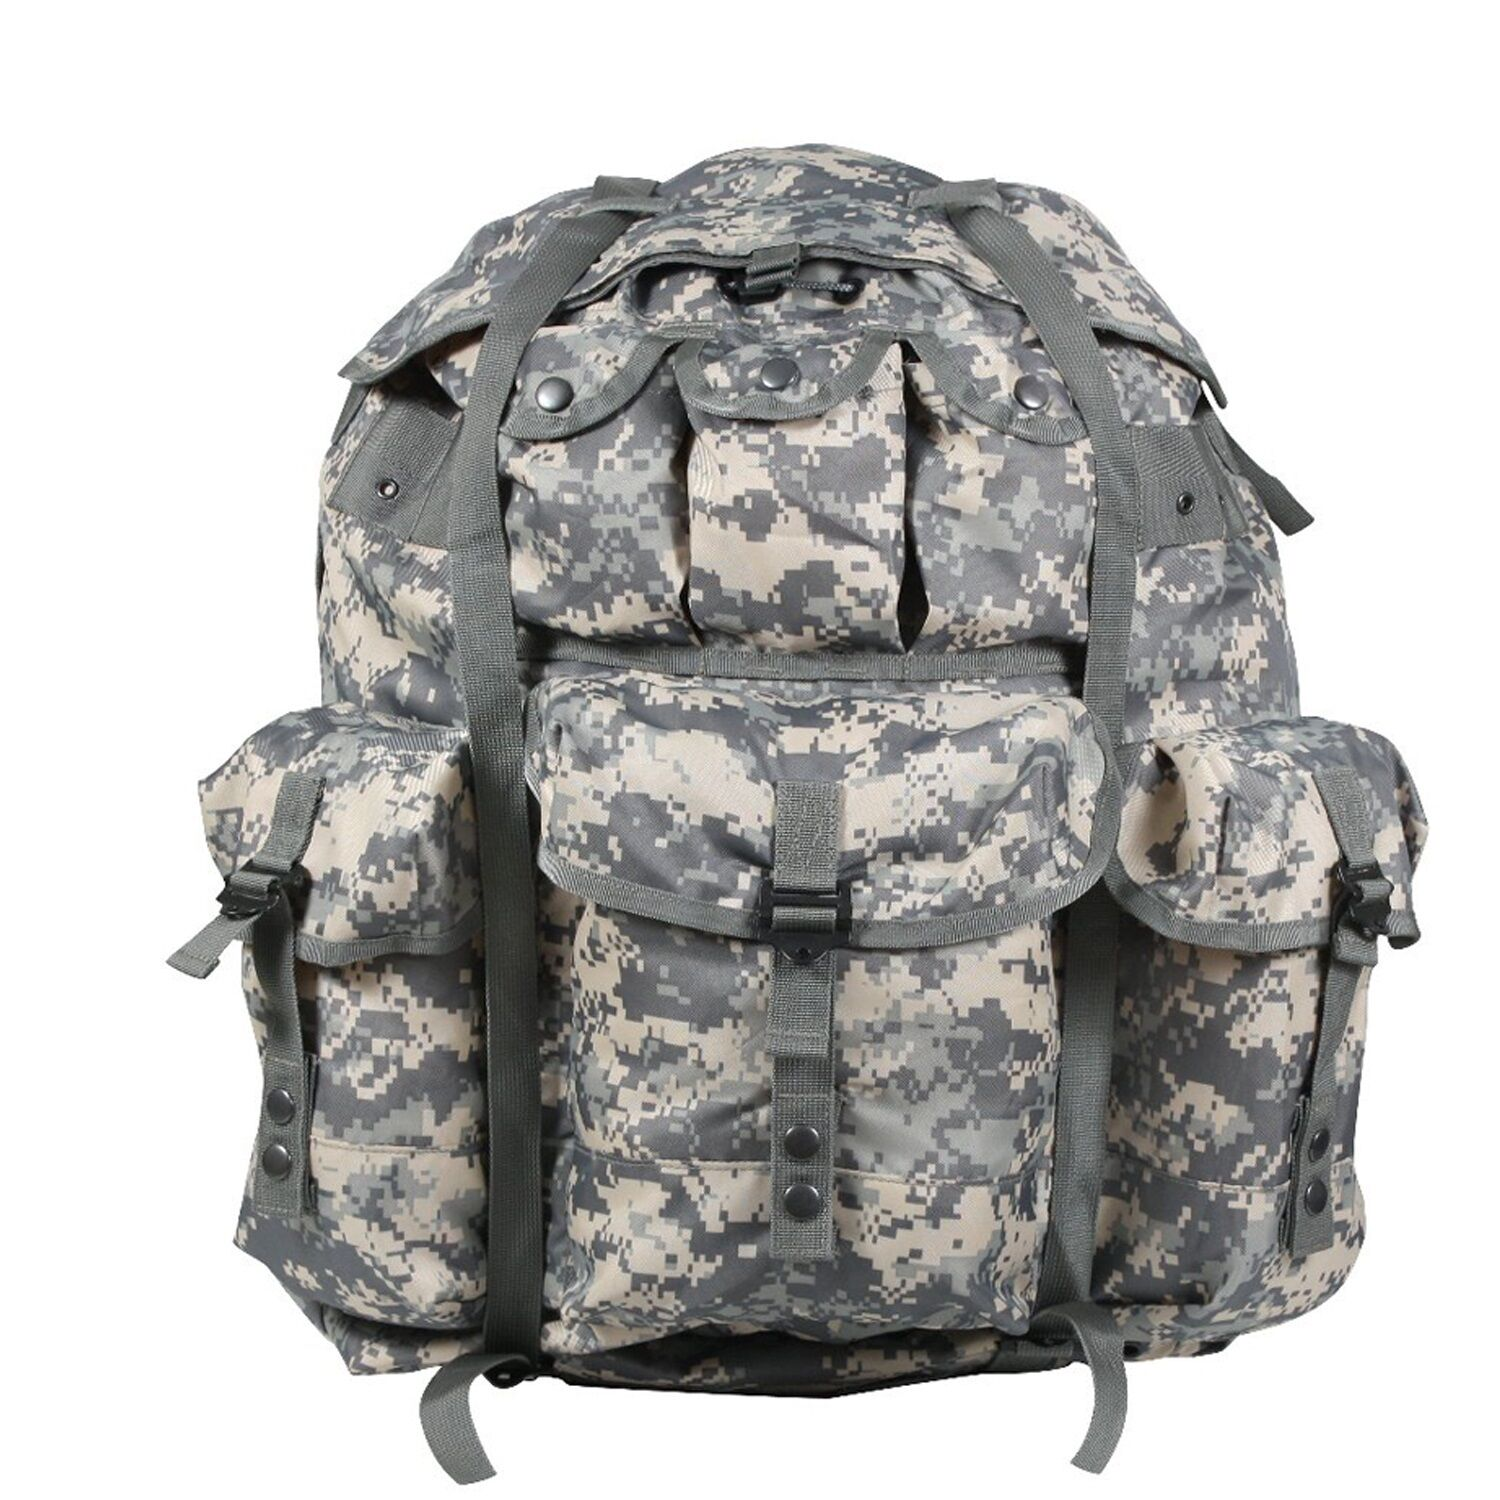 Army at Digital Camo US UCP ACU LARGE Alice Pack with ALU FRAME Zaino